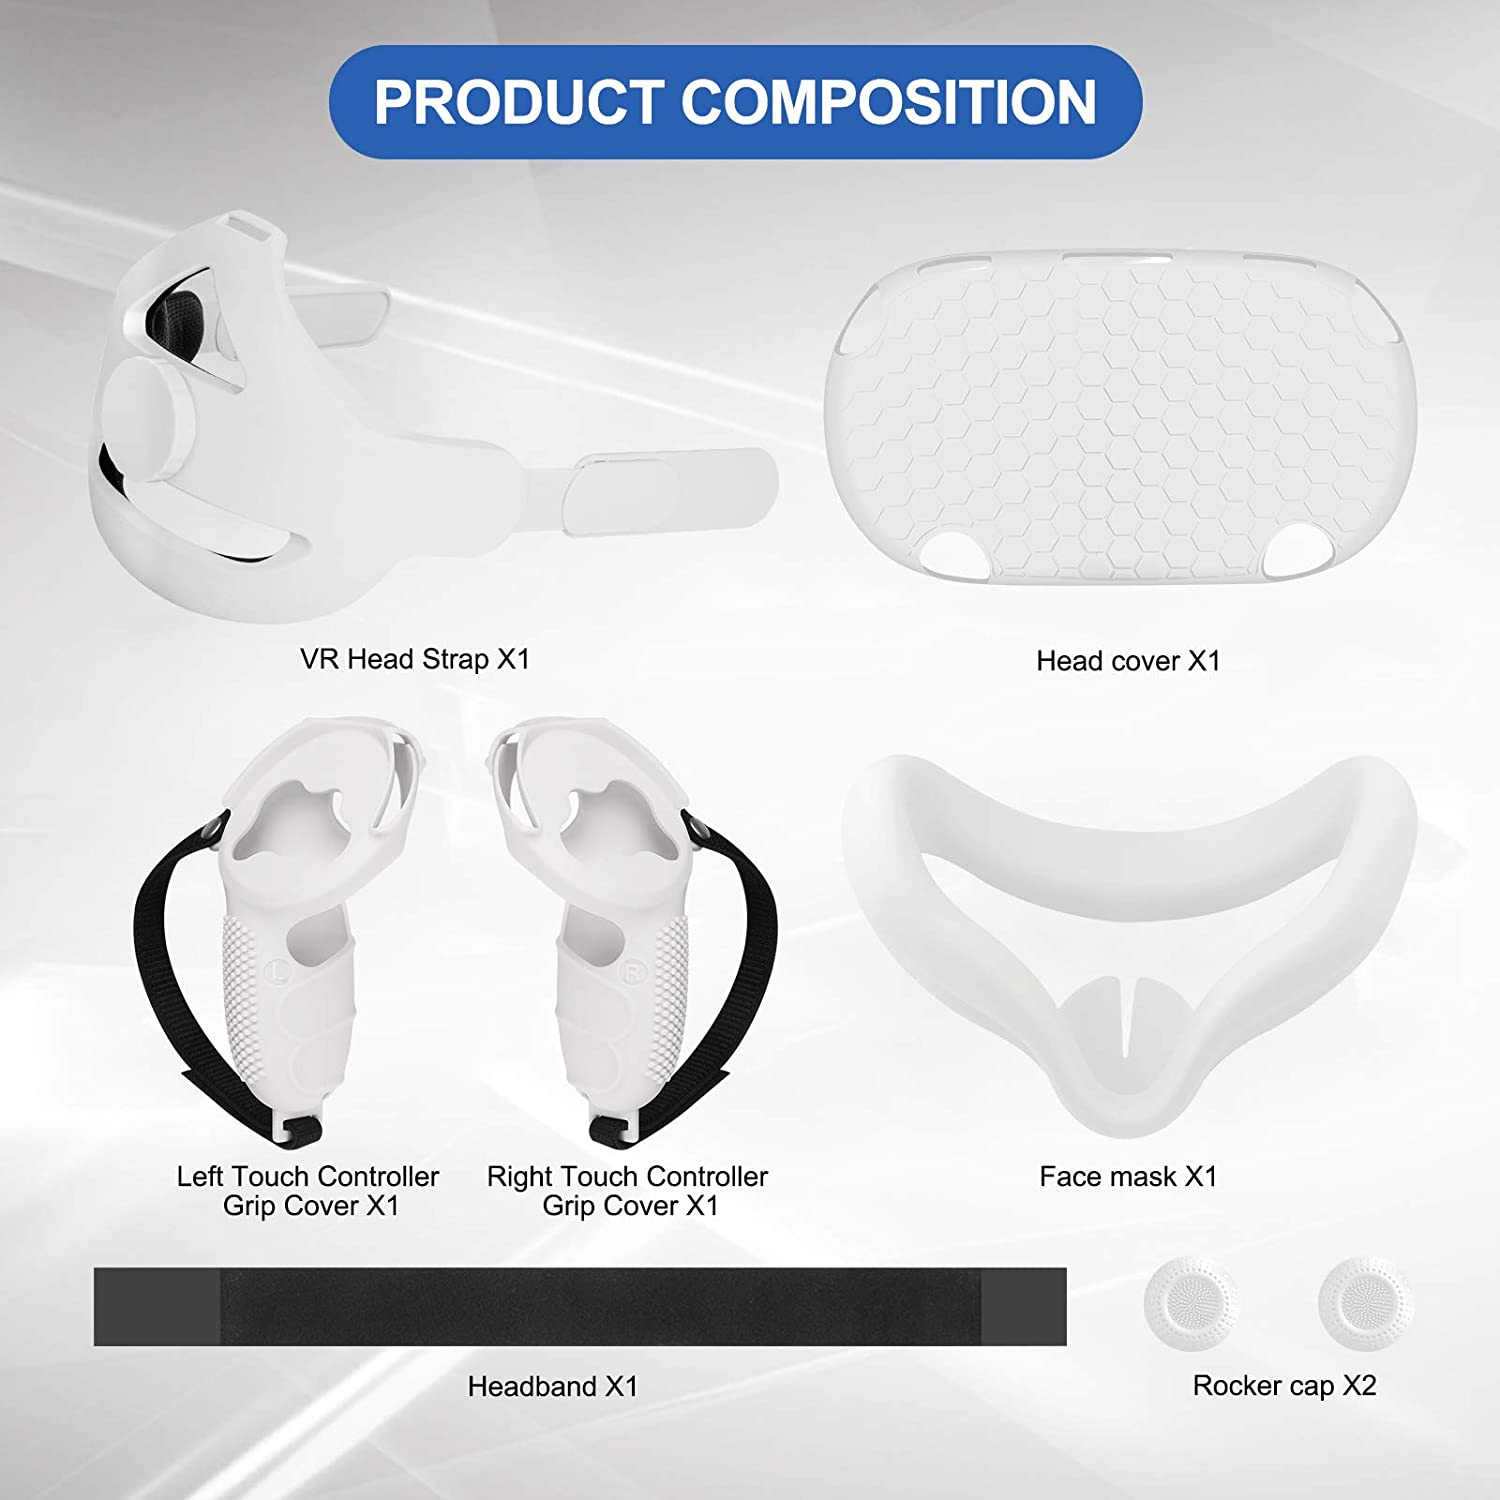 Esimen 5 in 1 Adjustable Head Strap for Oculus Quest 2 VR Shell Front Face Pad Grip Cover,Enhanced Support and Comfort in VR (White)